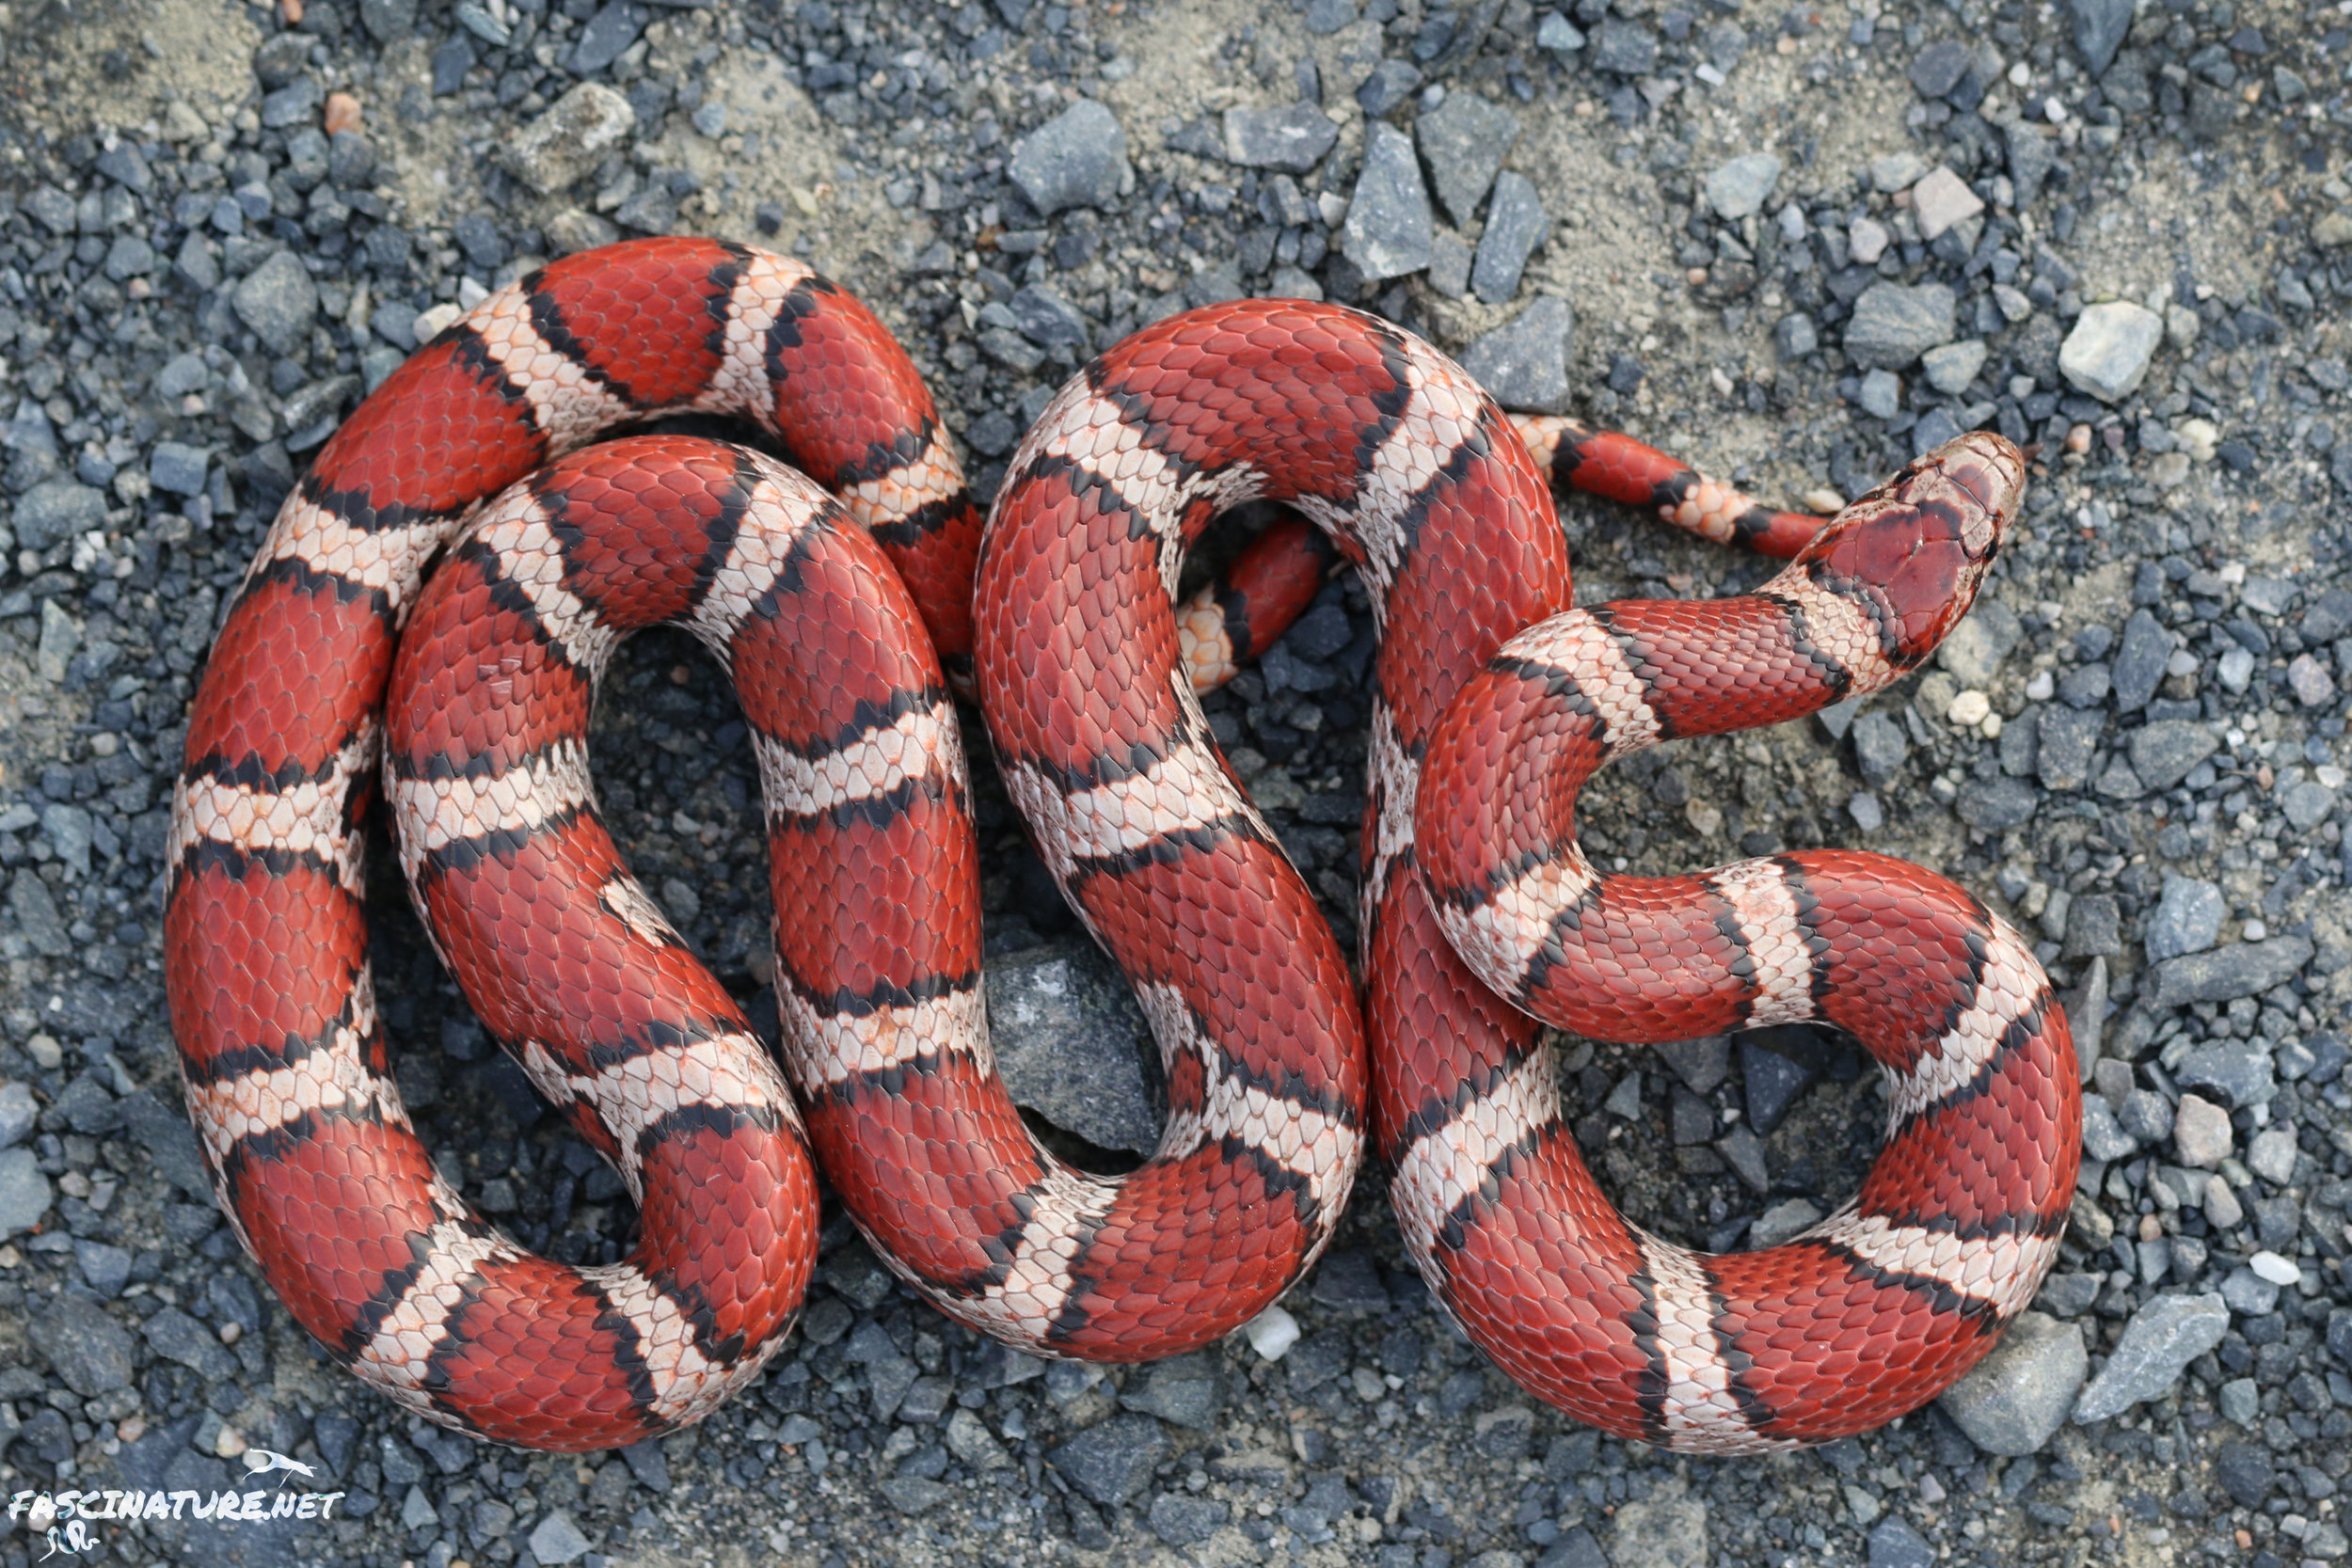 Featured in the Snakes of the NJ Pine Barrens